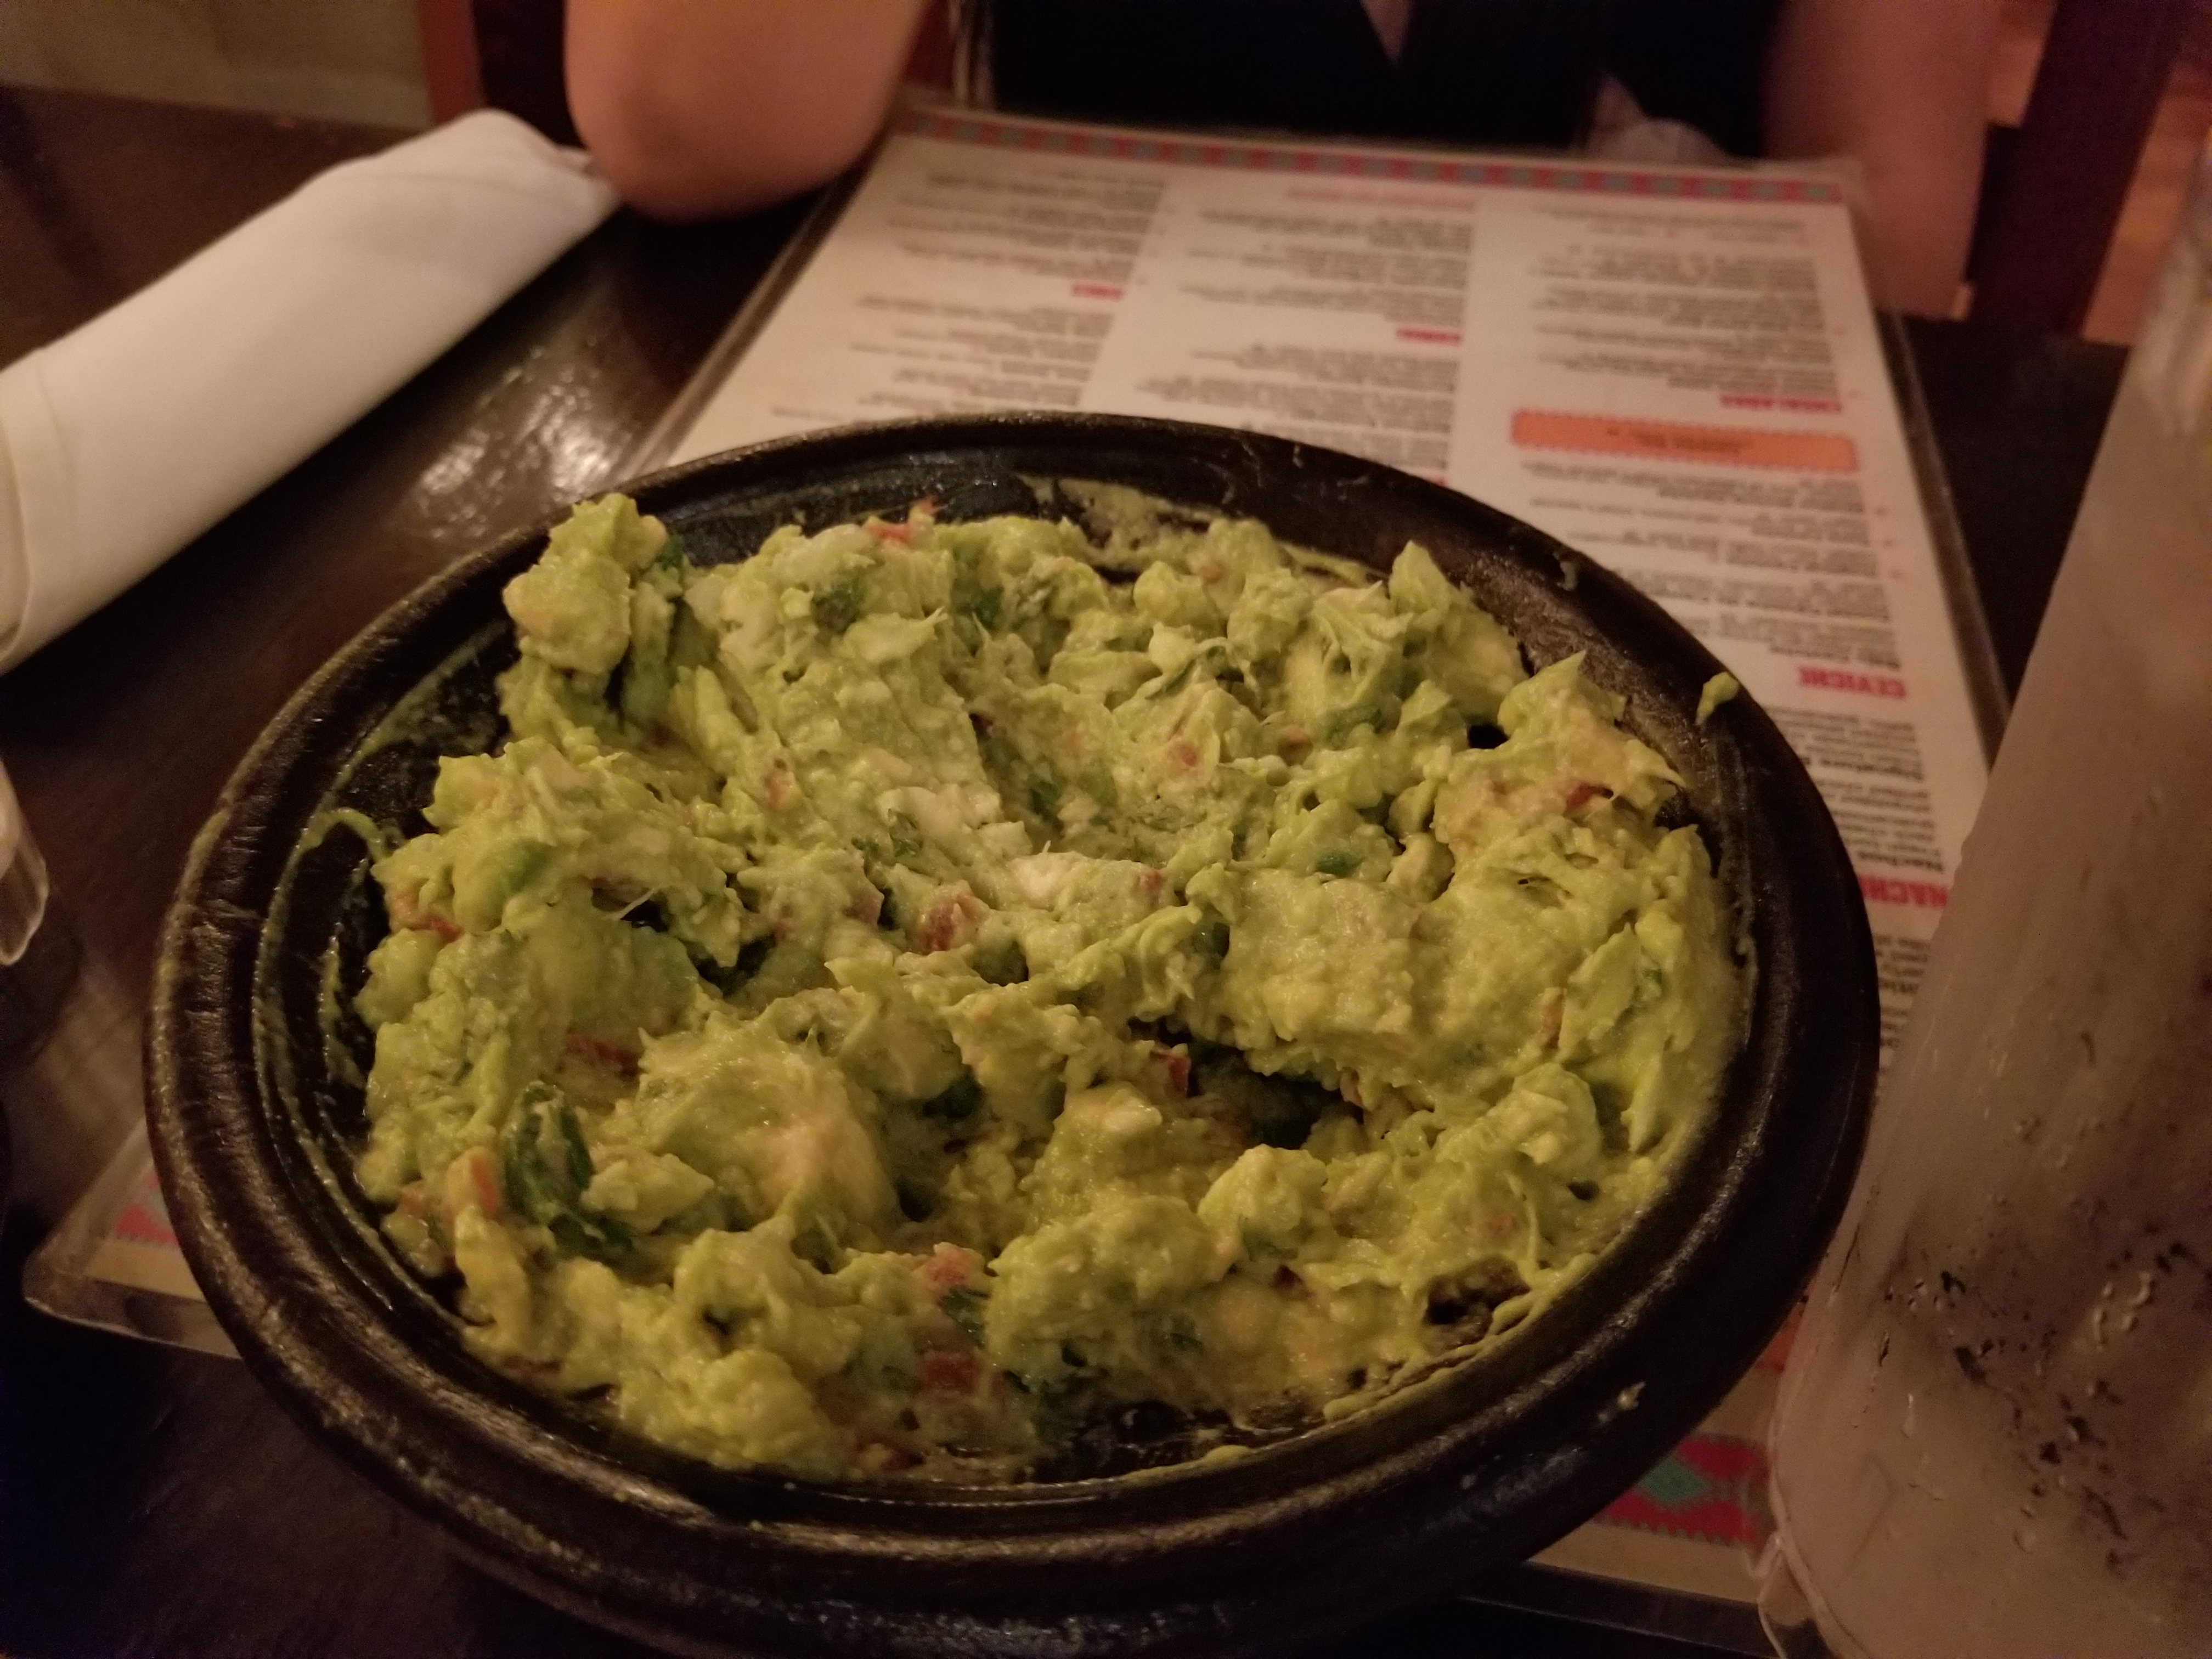 Tableside Guacamole!